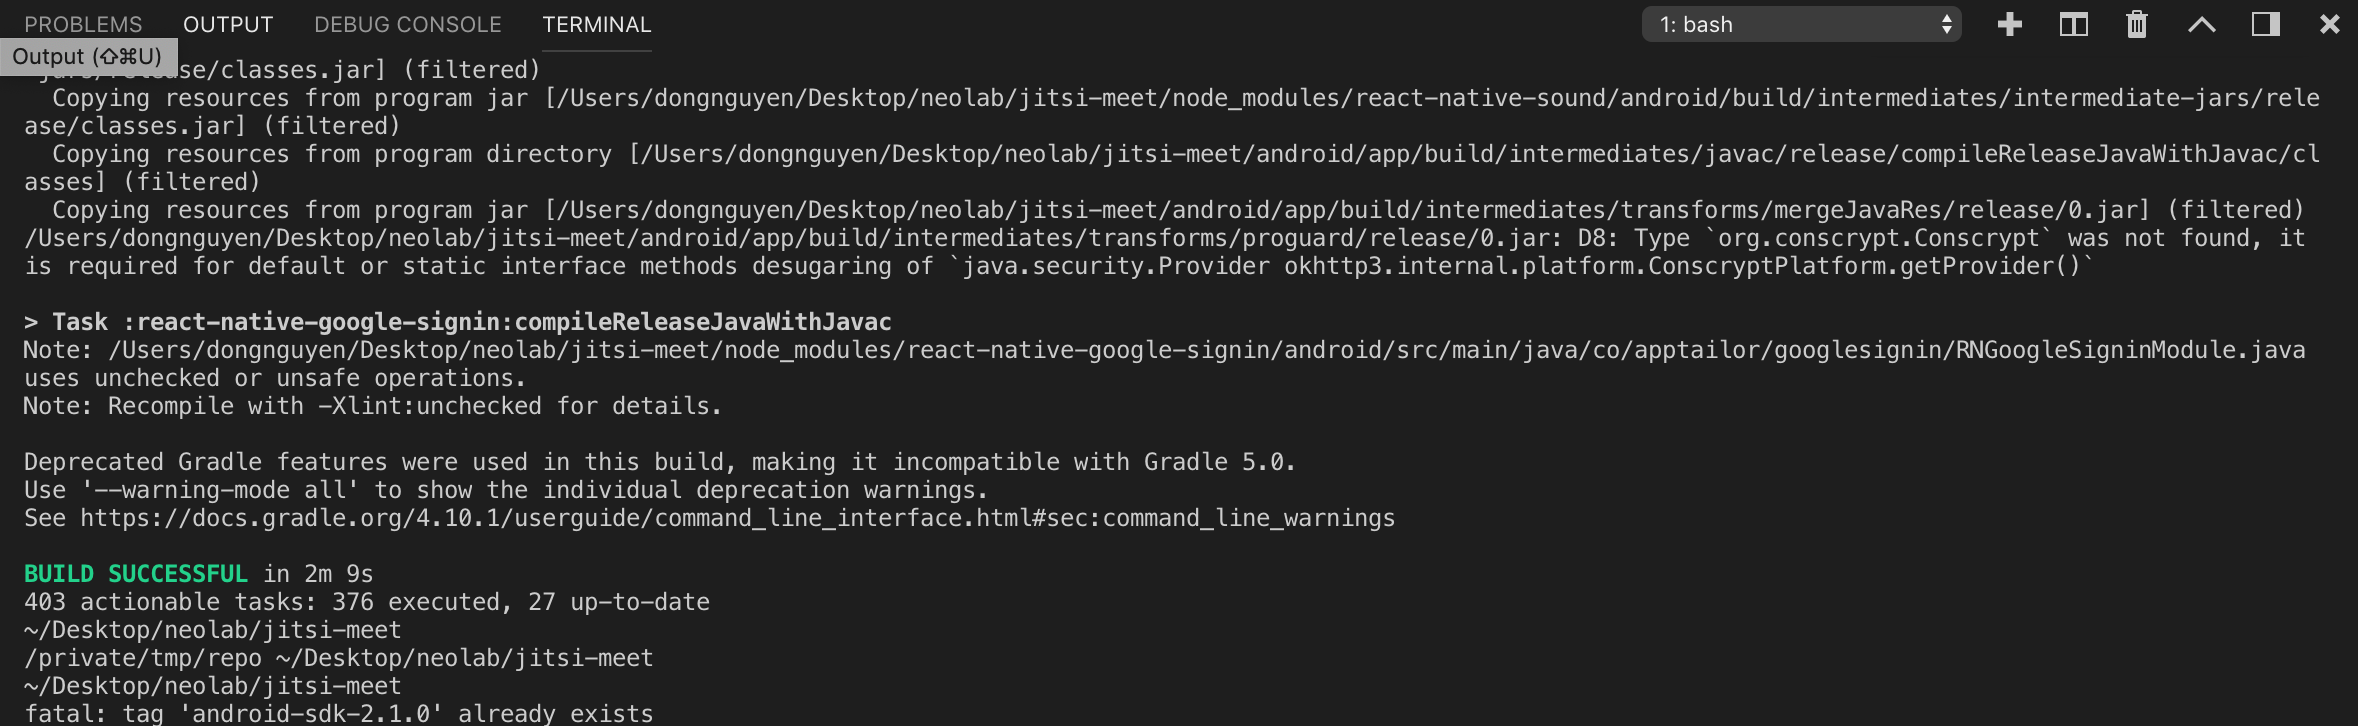 Android craches with pre-build SDK · Issue #4257 · jitsi/jitsi-meet